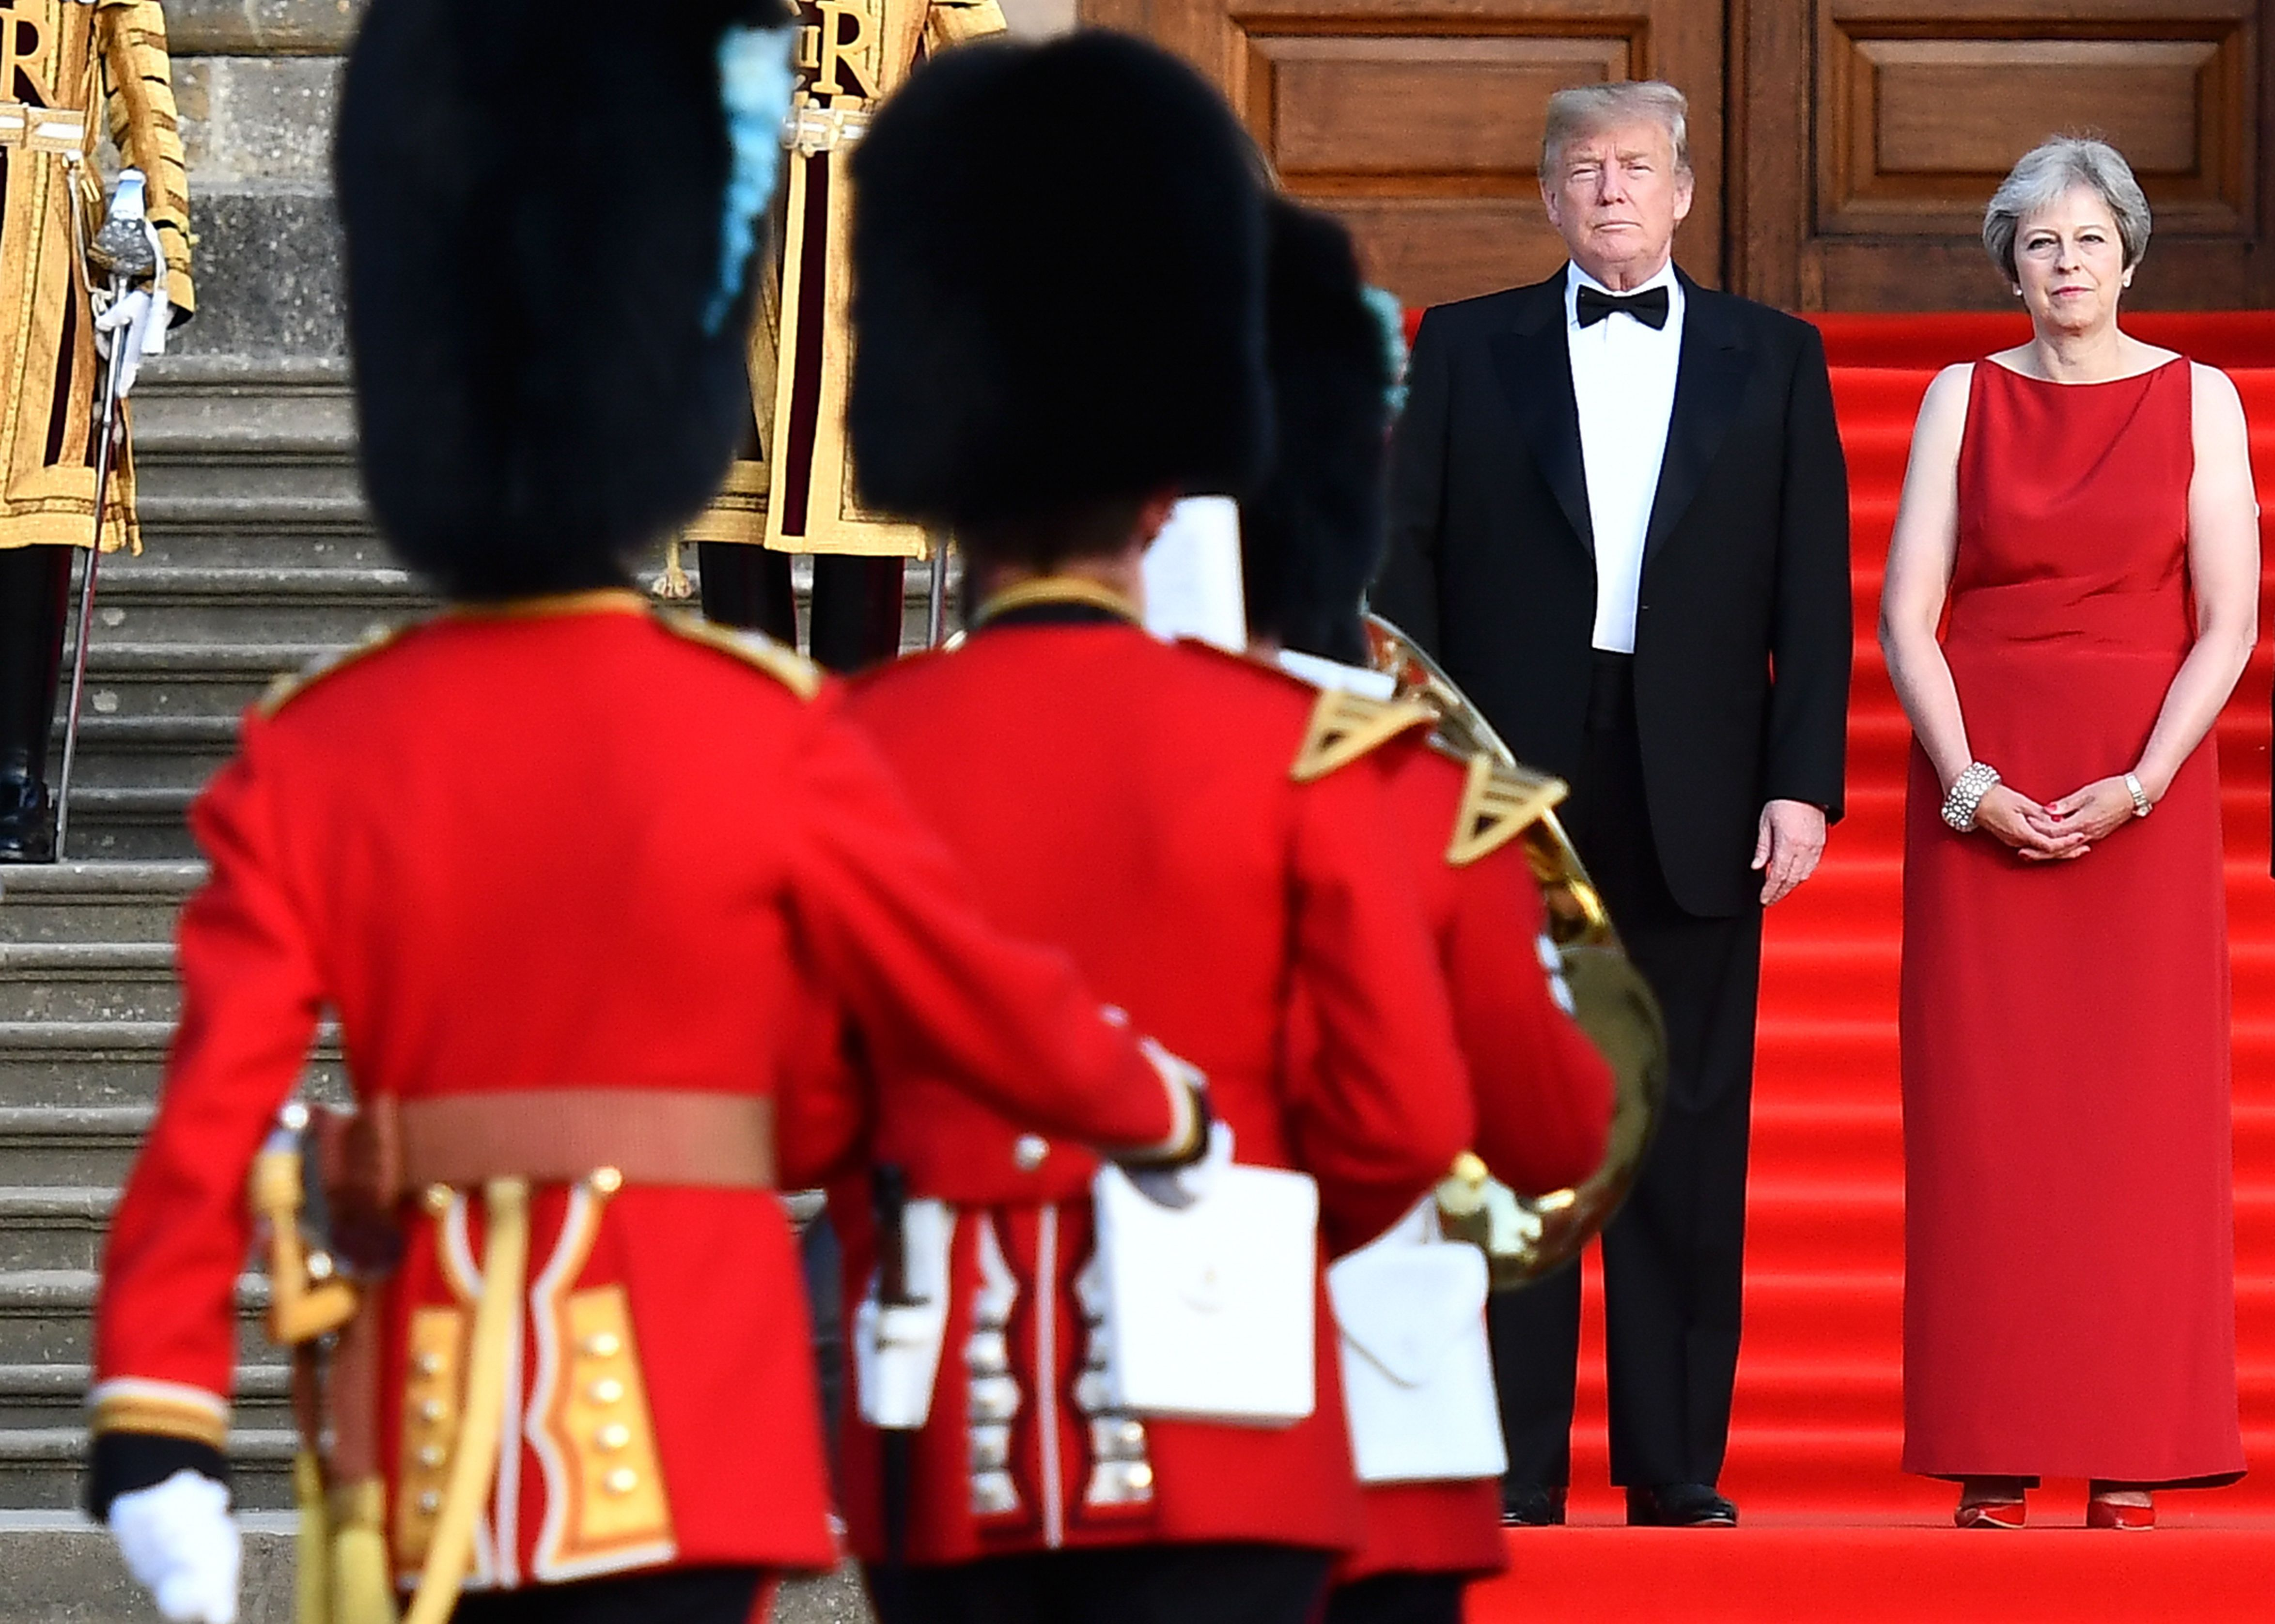 Trump stands with Theresa May on the steps of the Great Court